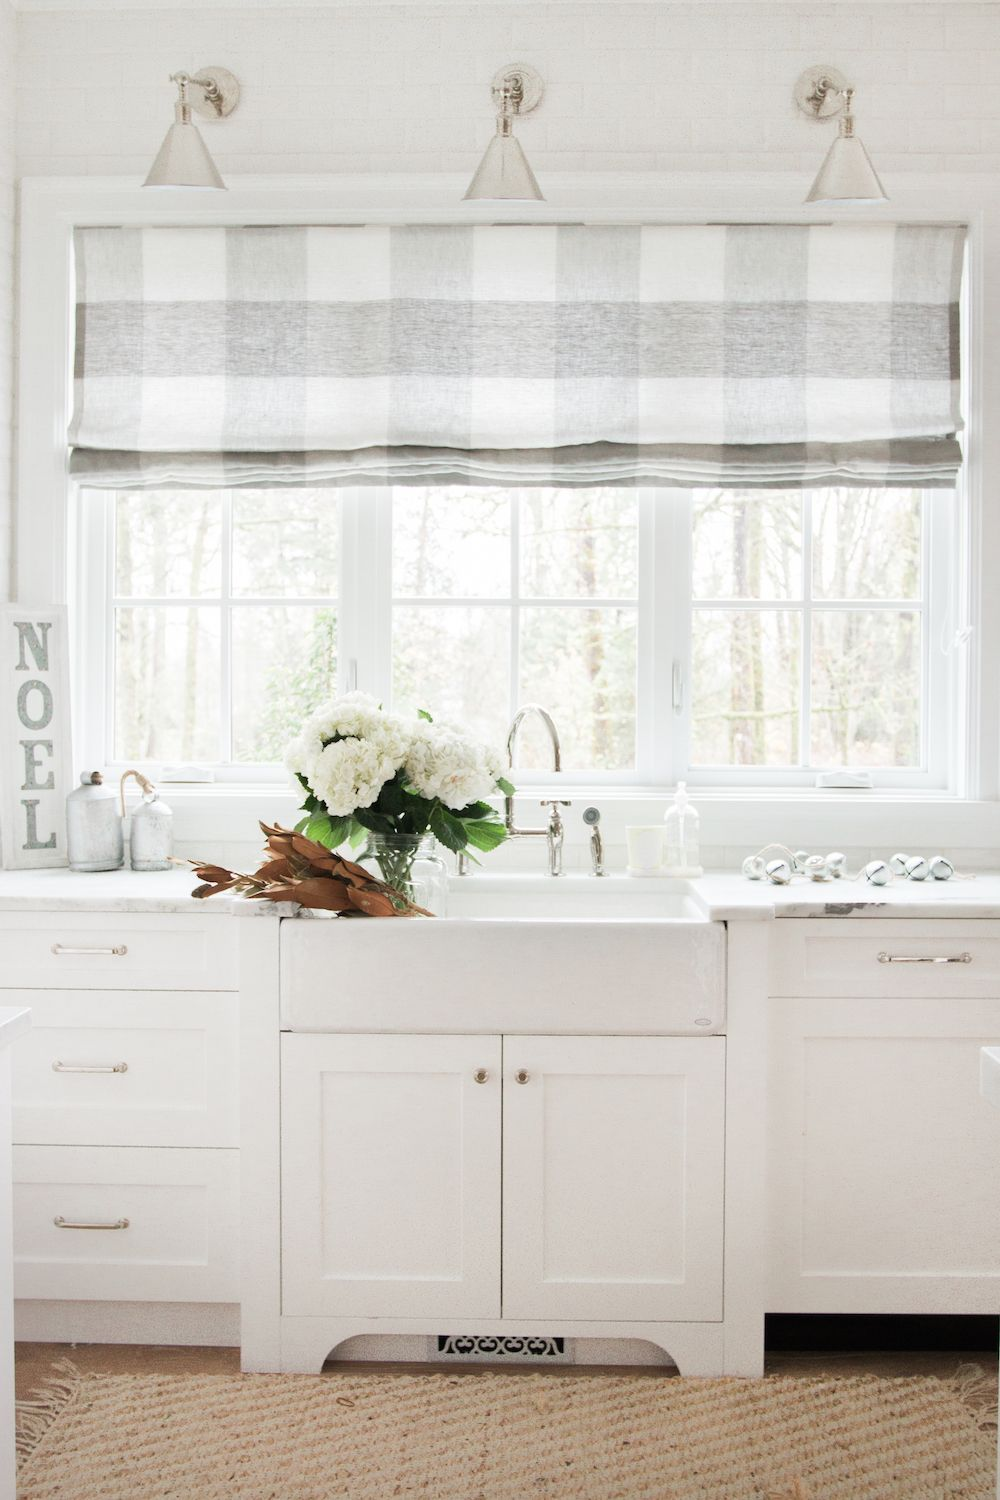 A Bright Kitchen With Beautiful Roman Shade Above The Sink